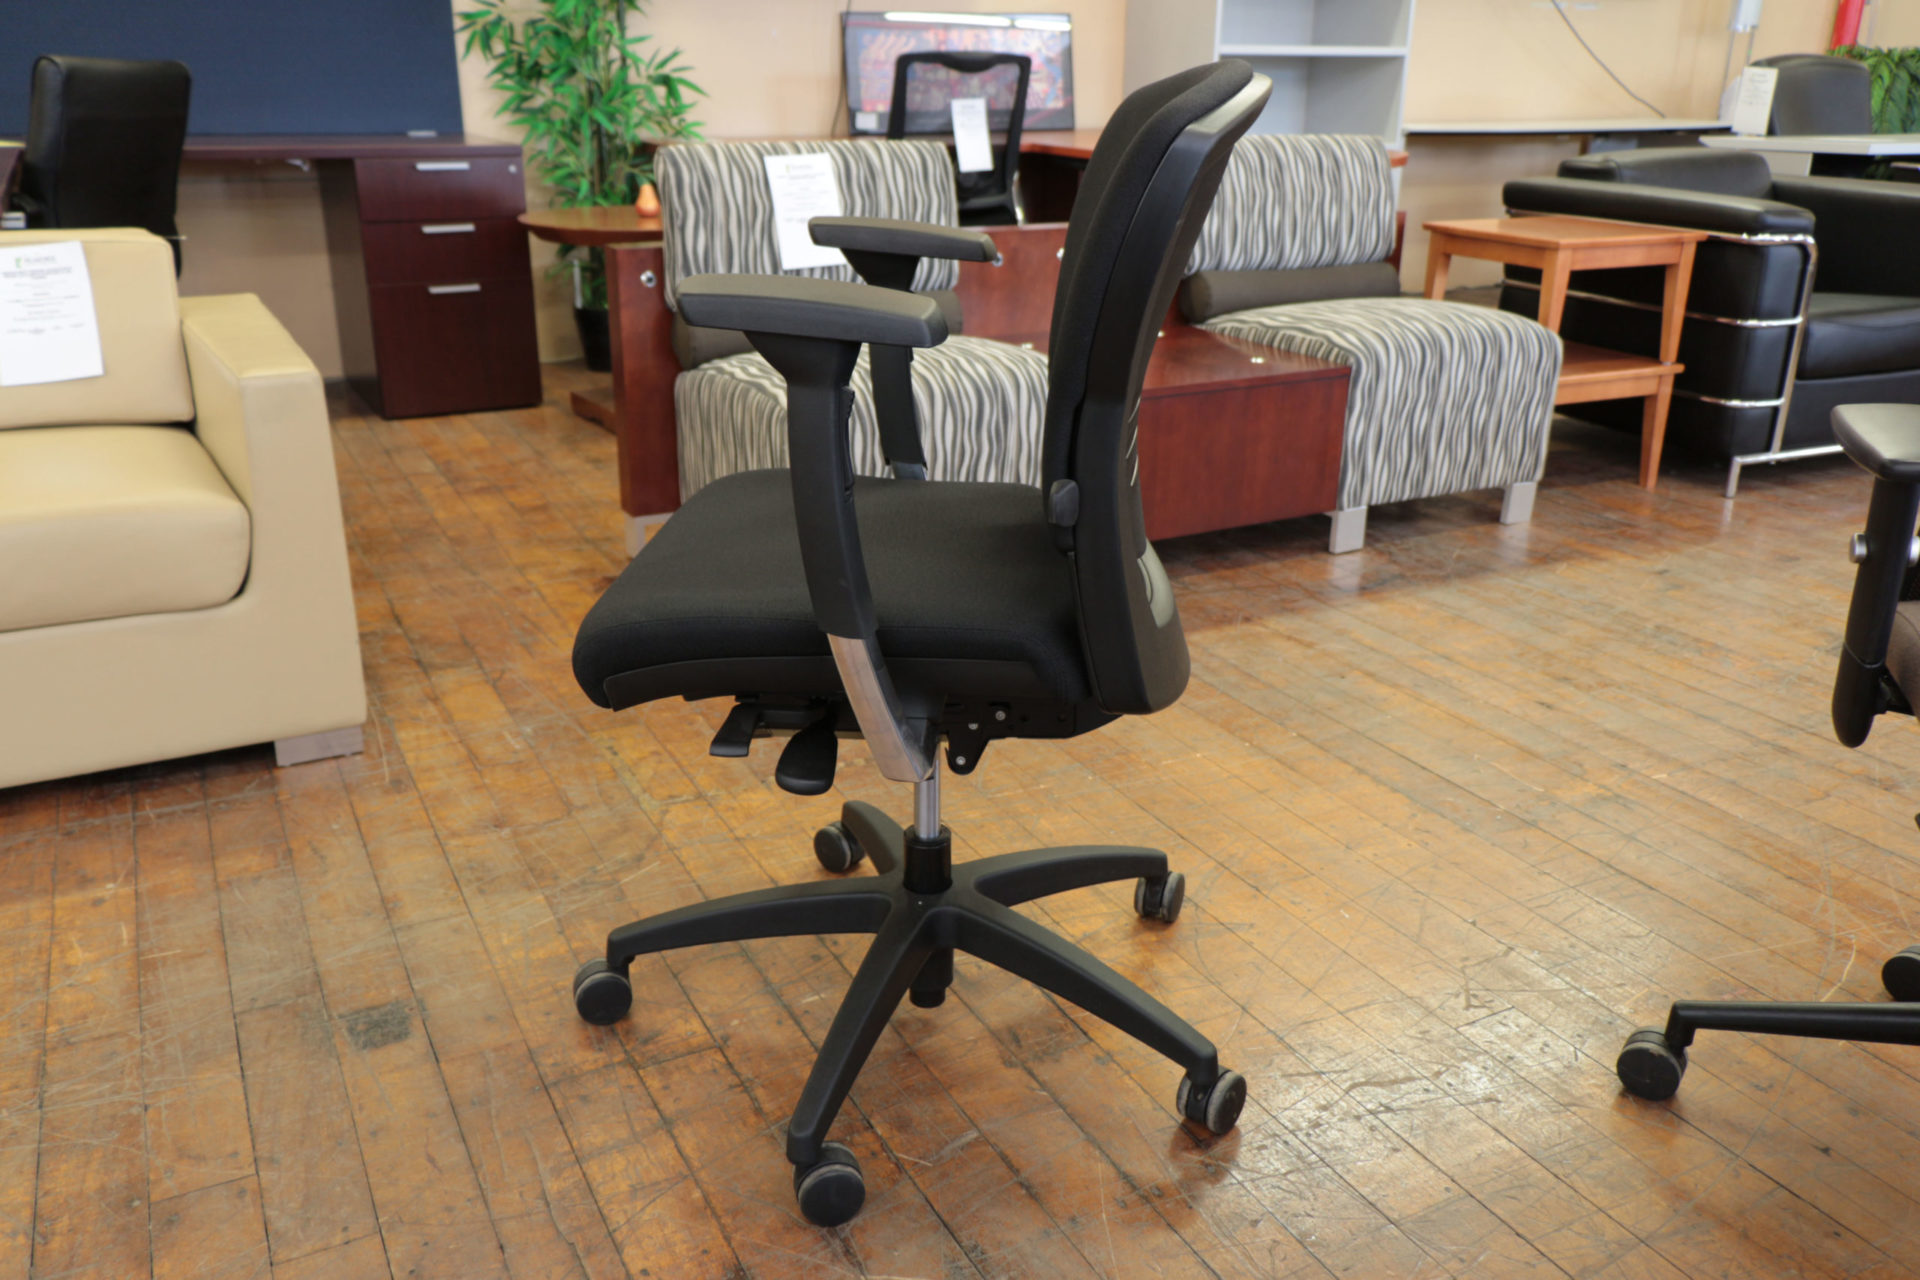 peartreeofficefurniture_peartreeofficefurniture_peartreeofficefurniture_img_8712.jpg